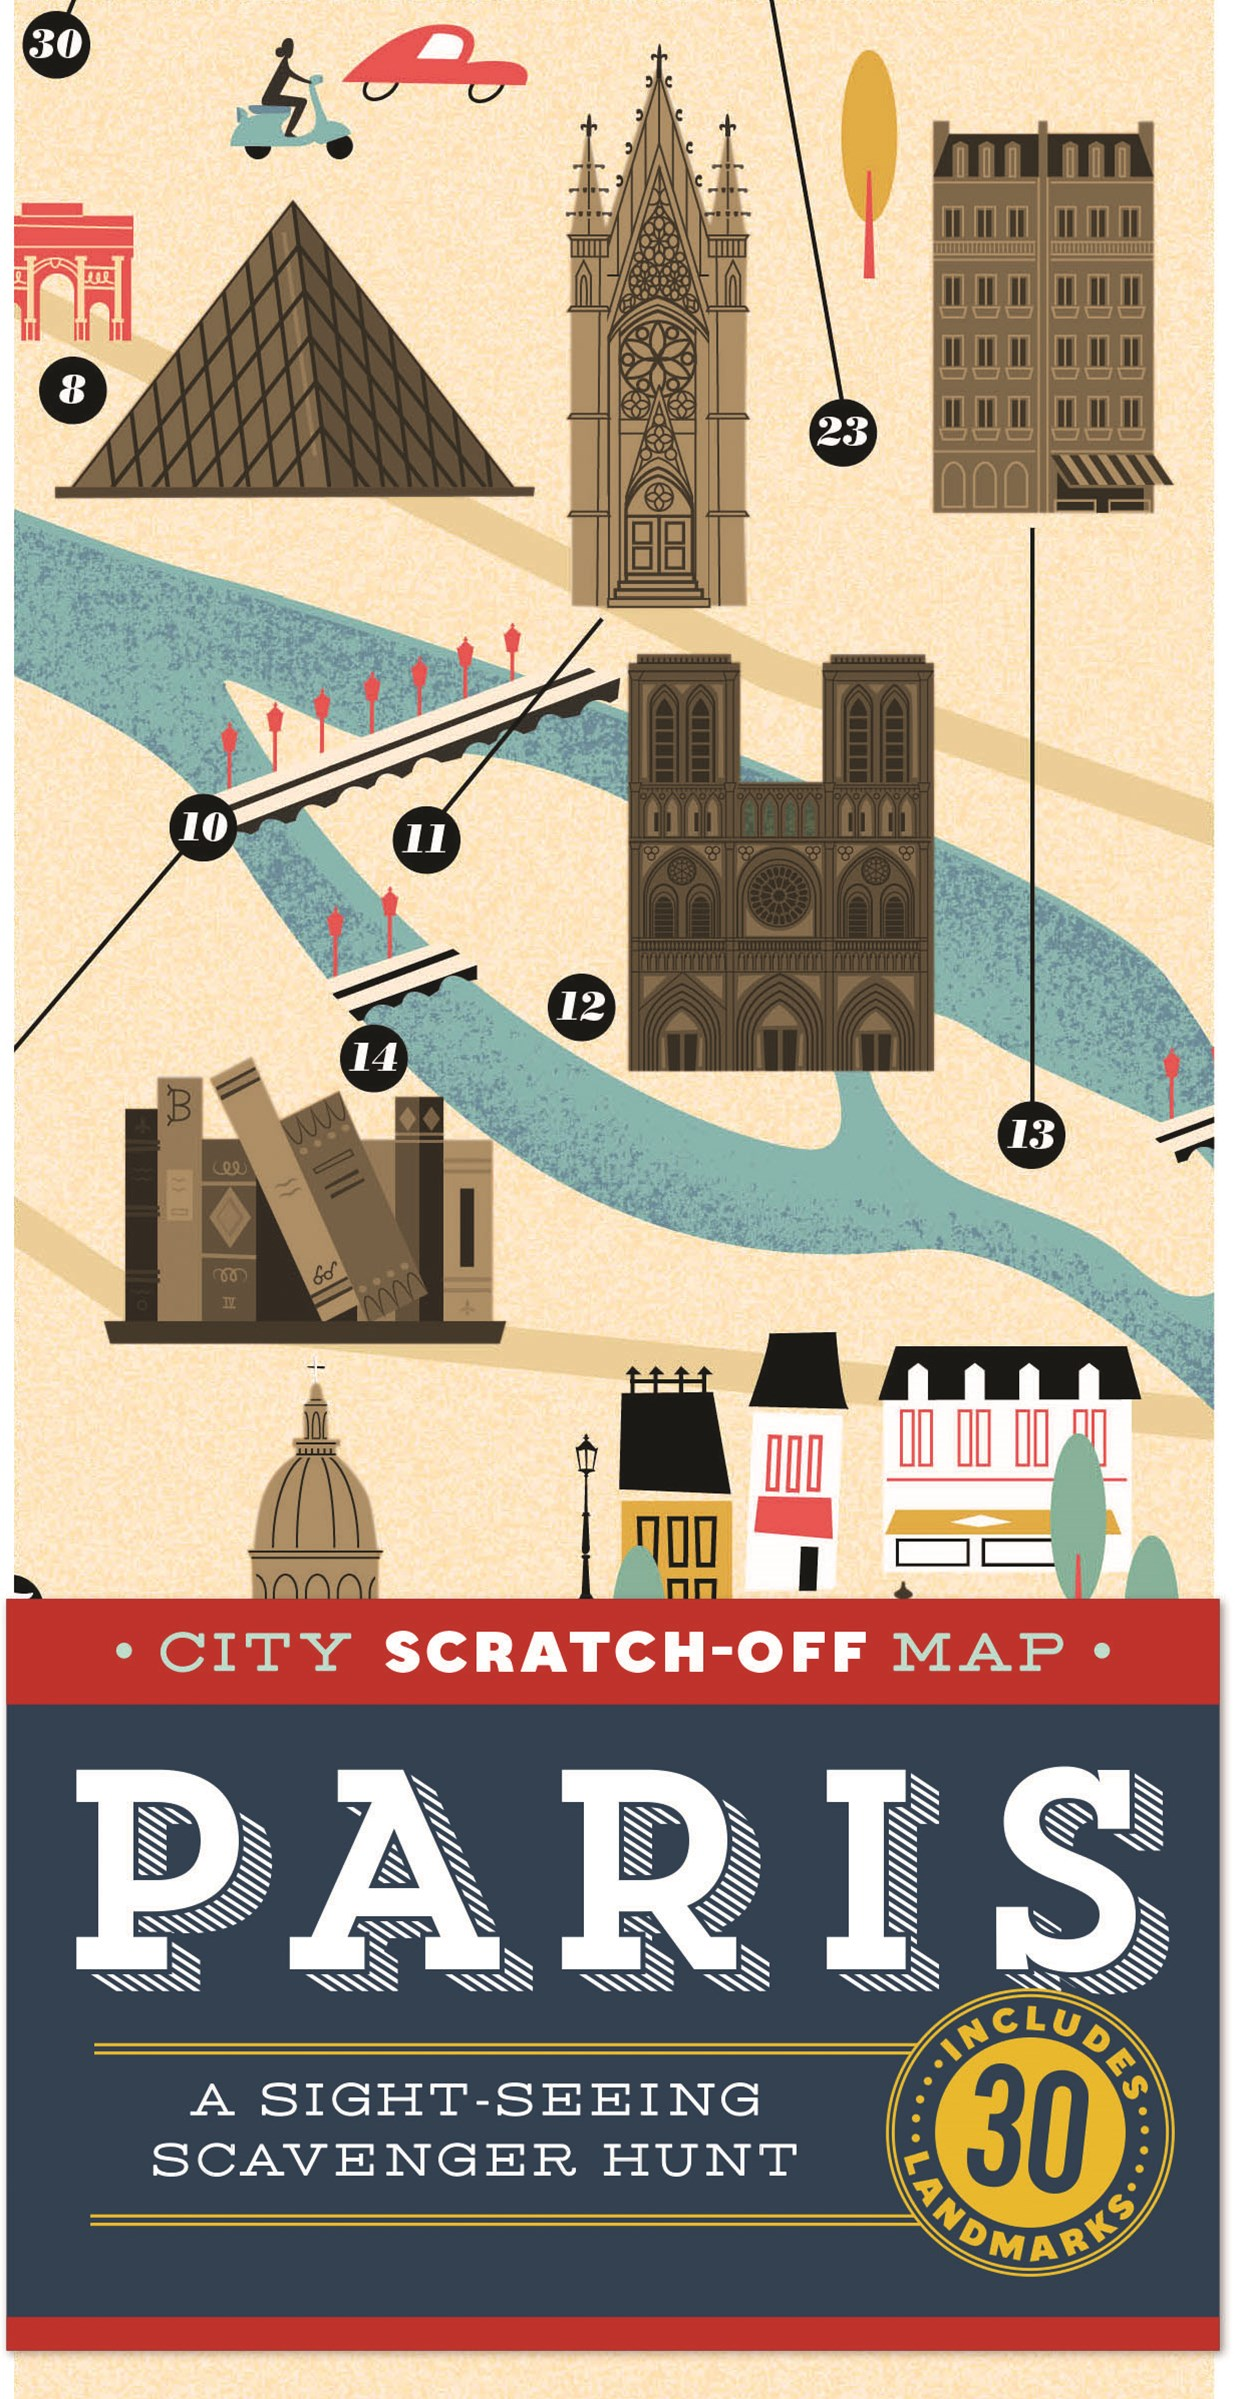 City Scratch-off Map: Paris